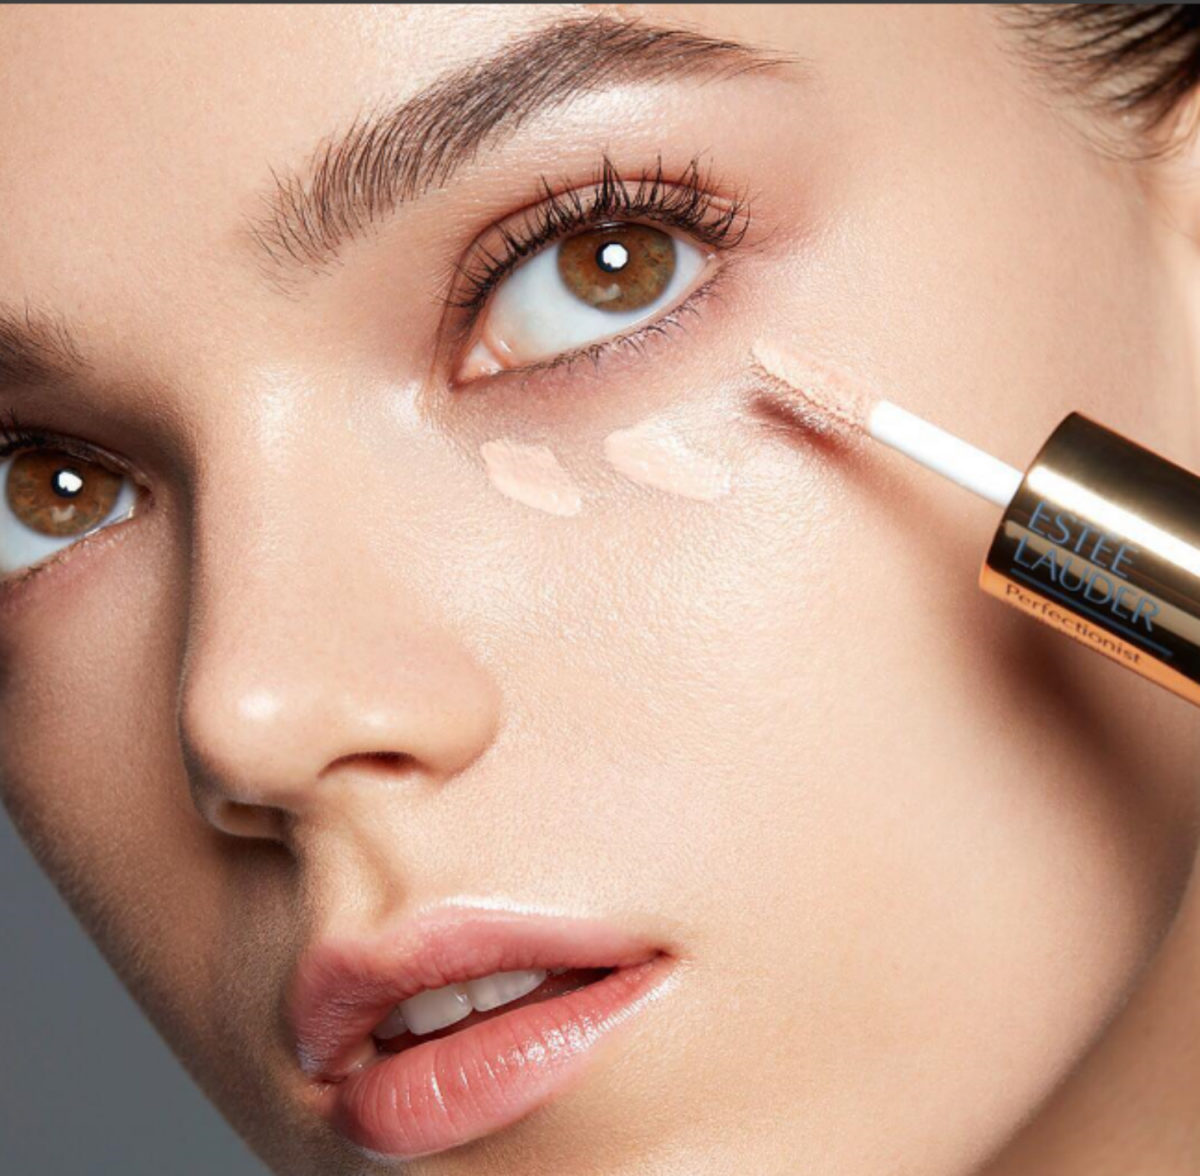 ESTÉE LAUDER BEAUTY TOOL NEW NEWS MAKE UP VIRTUAL REALITY